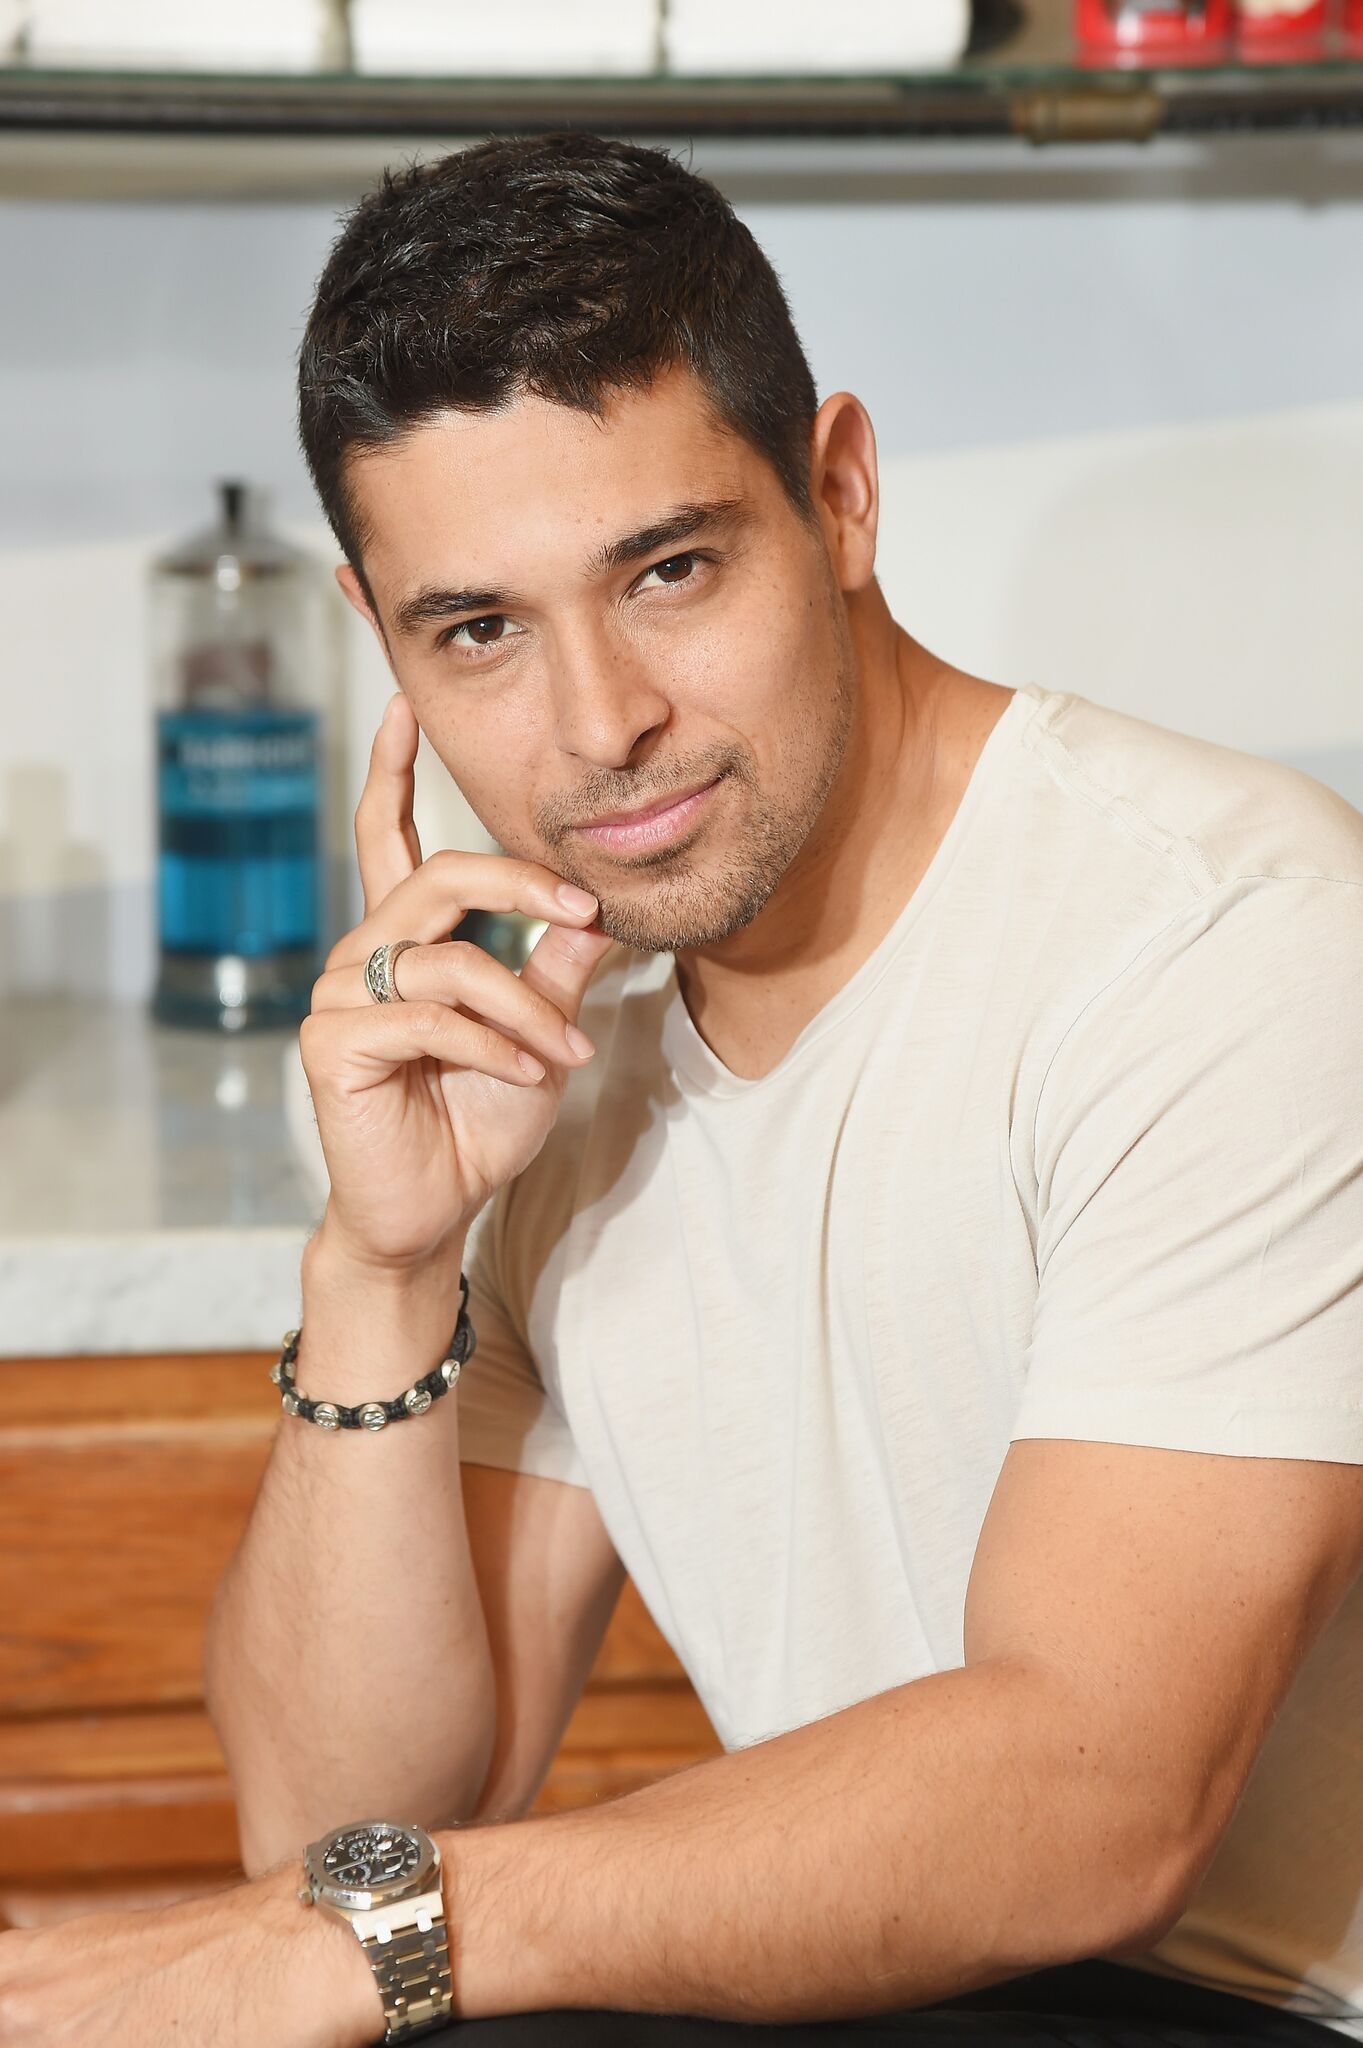 Wilmer Valderrama teams up with Old Spice to right hair wrongs at Sharps Barber and Shop | Getty Images